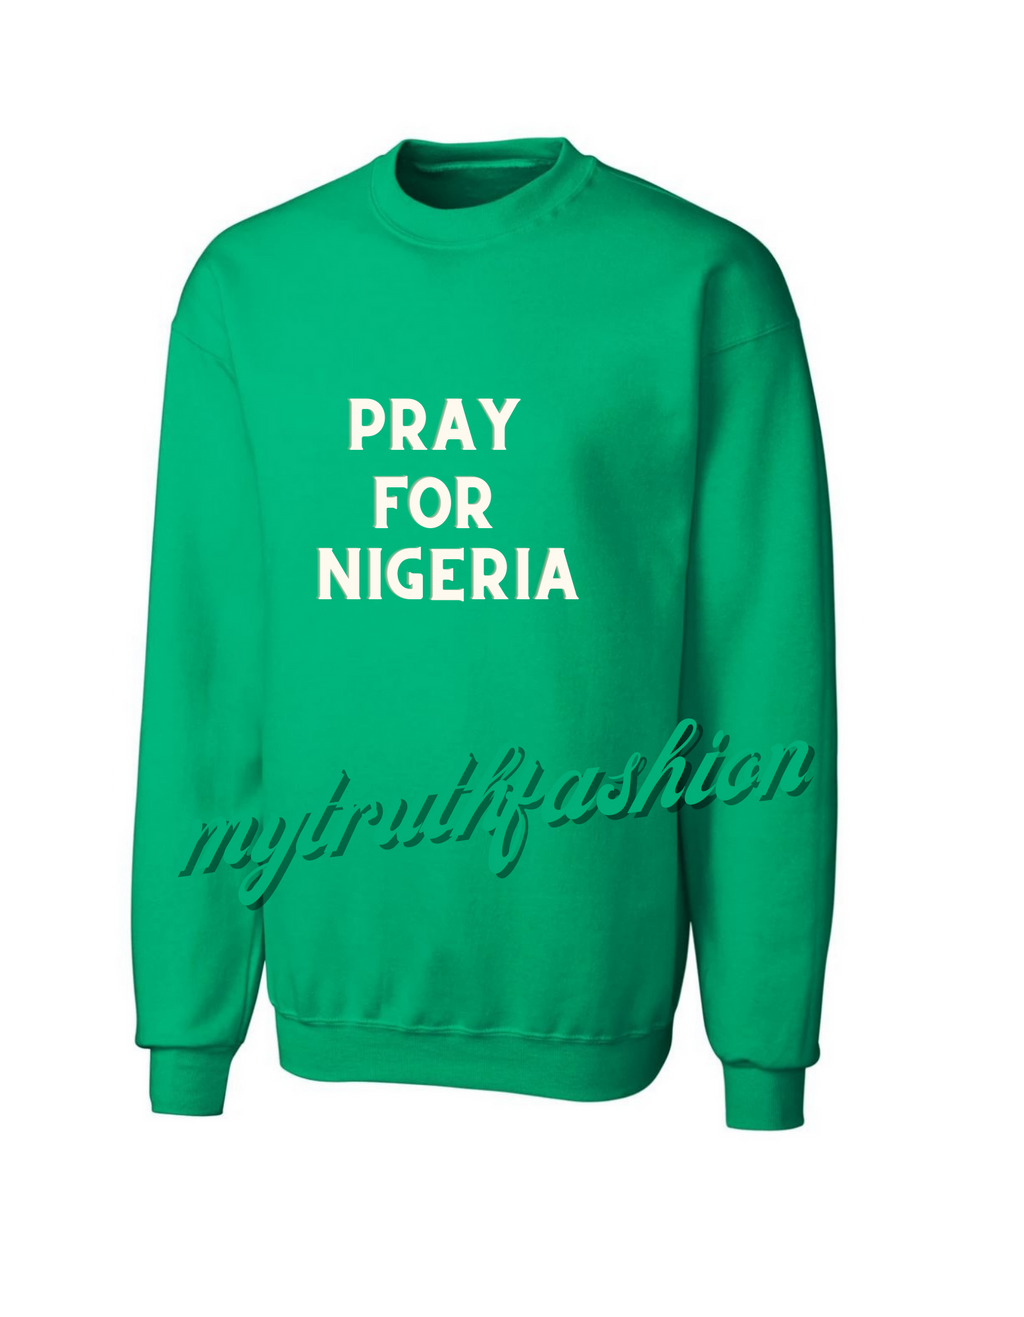 PRAY FOR NIGERIA SWEATSHIRT